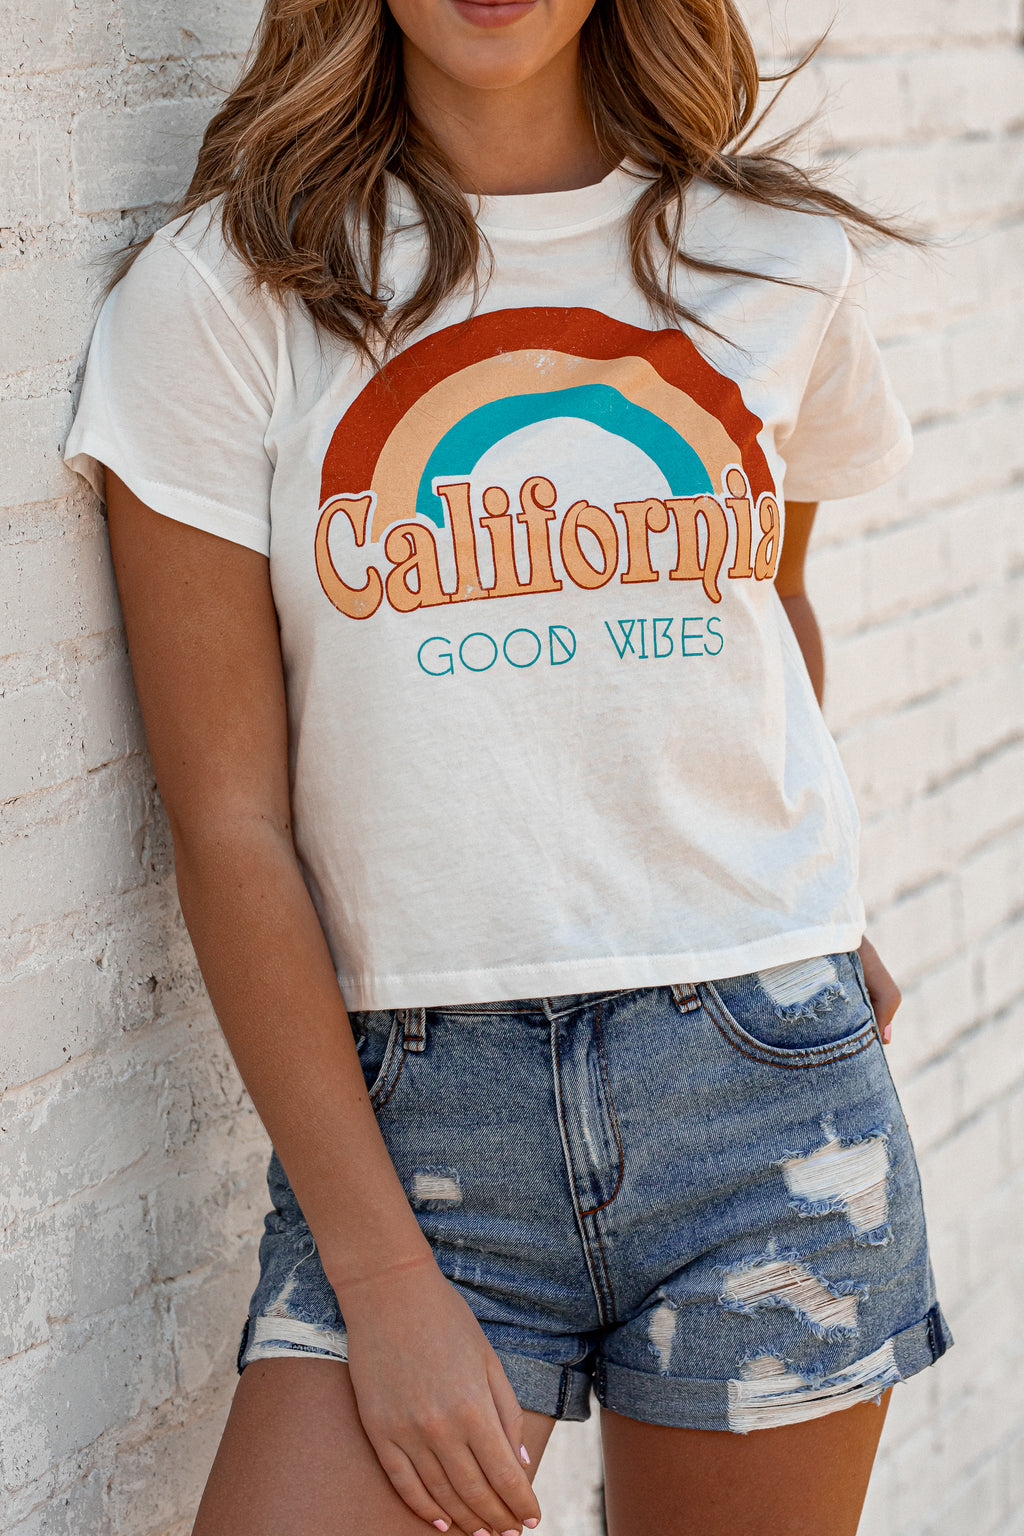 California Good Vibes Top - FINAL SALE